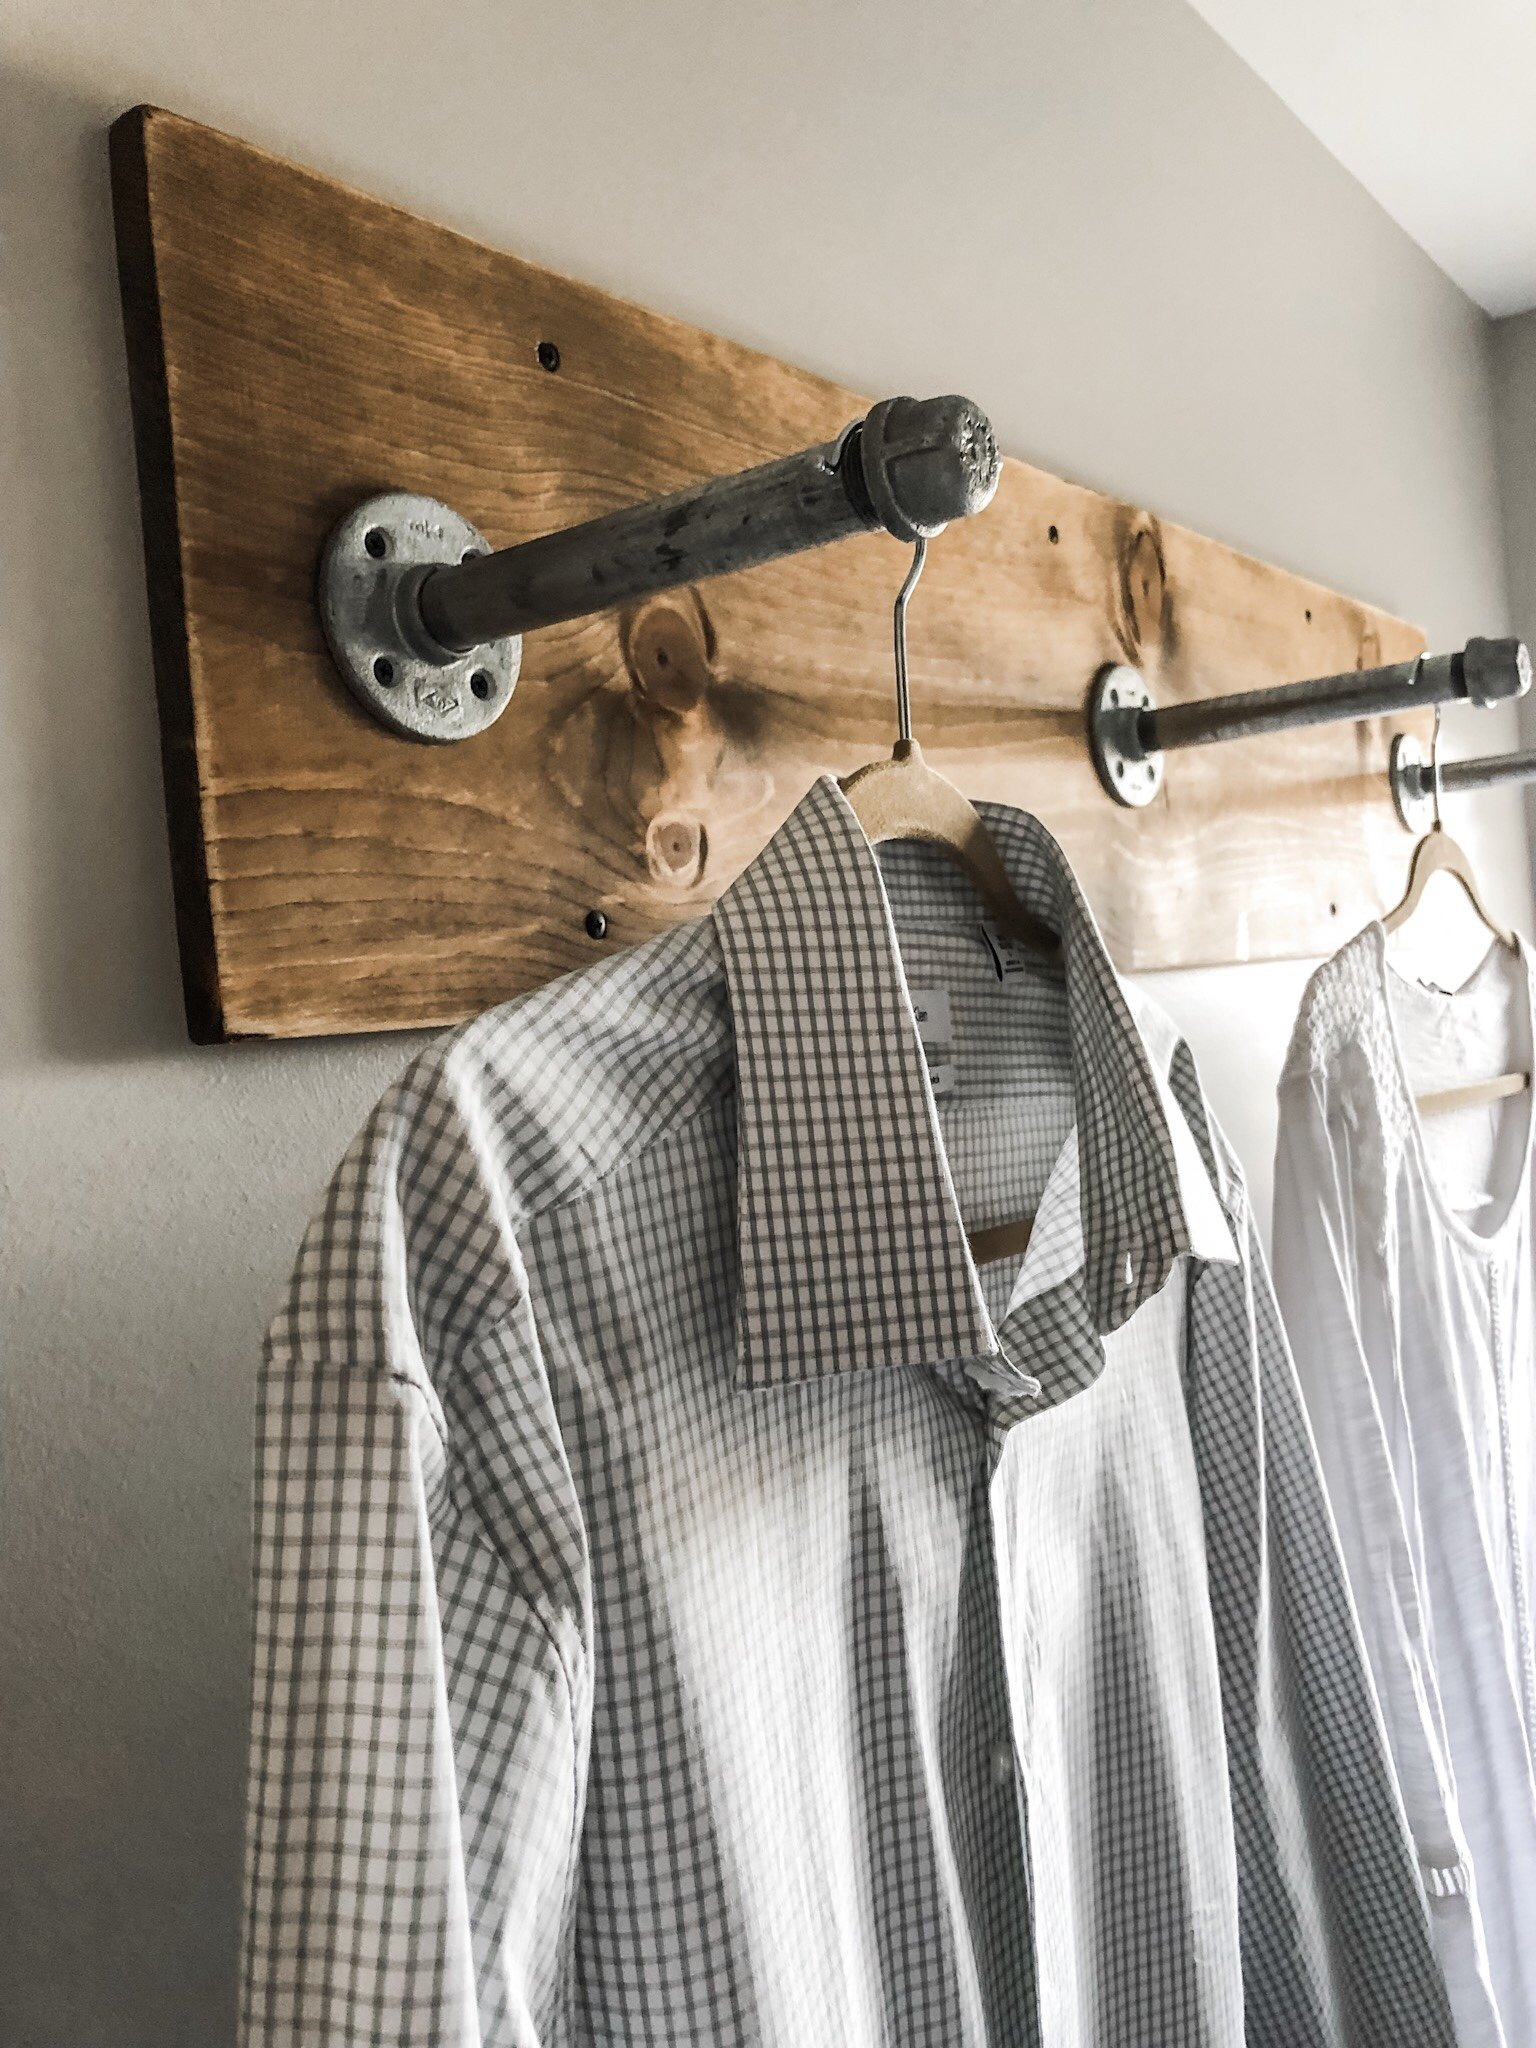 Industrial Clothing Rack Diy Clothing Rack For Your Laundry Room With Industrial Pipes